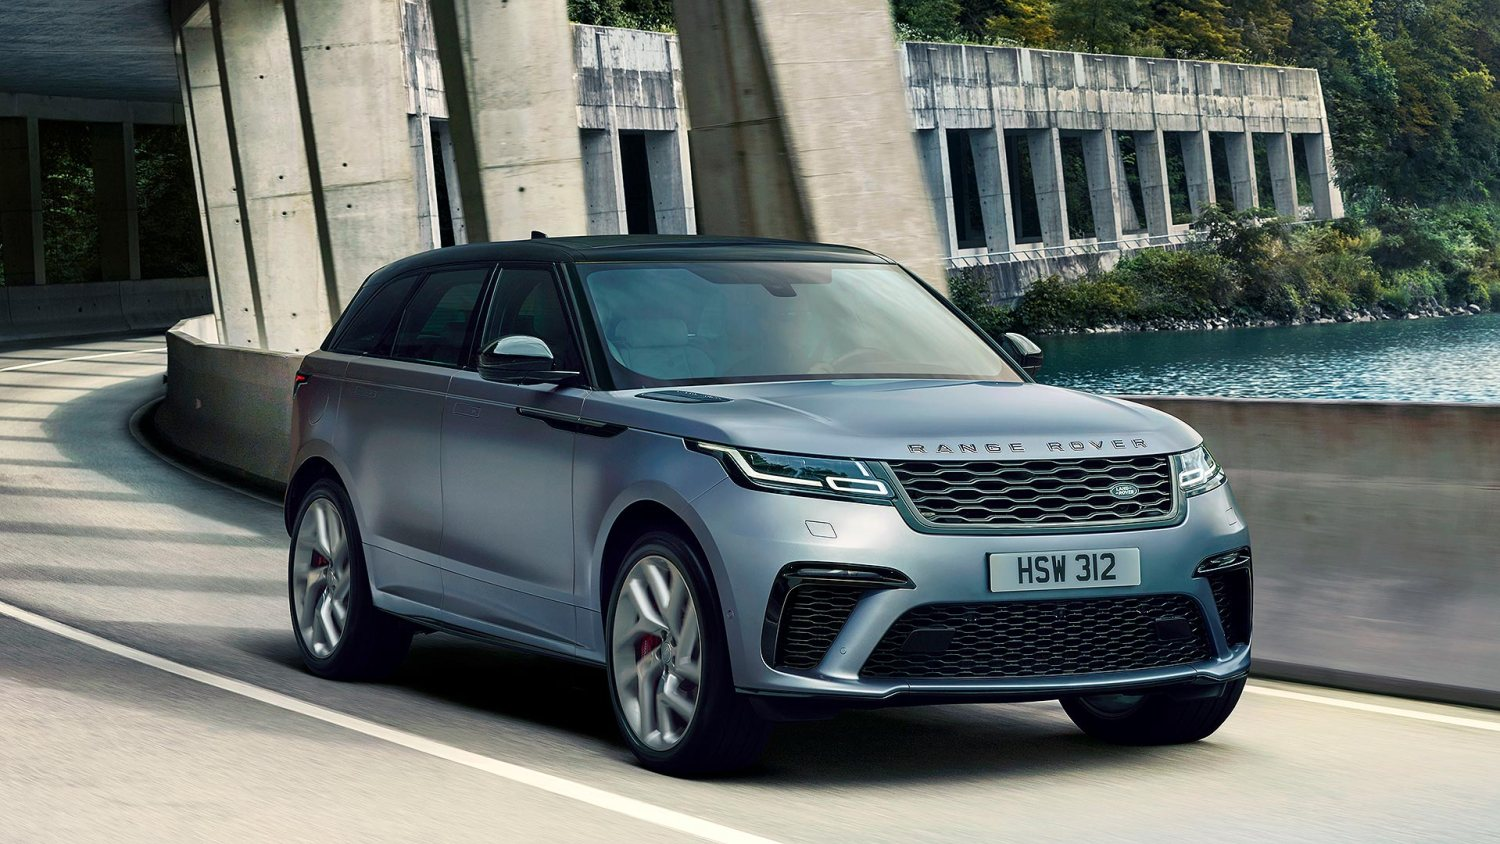 2019 Range Rover Velar SVR: News, Specs, Price >> Range Rover Velar Svautobiography Hot Rod V8 Velar Is Here At Last